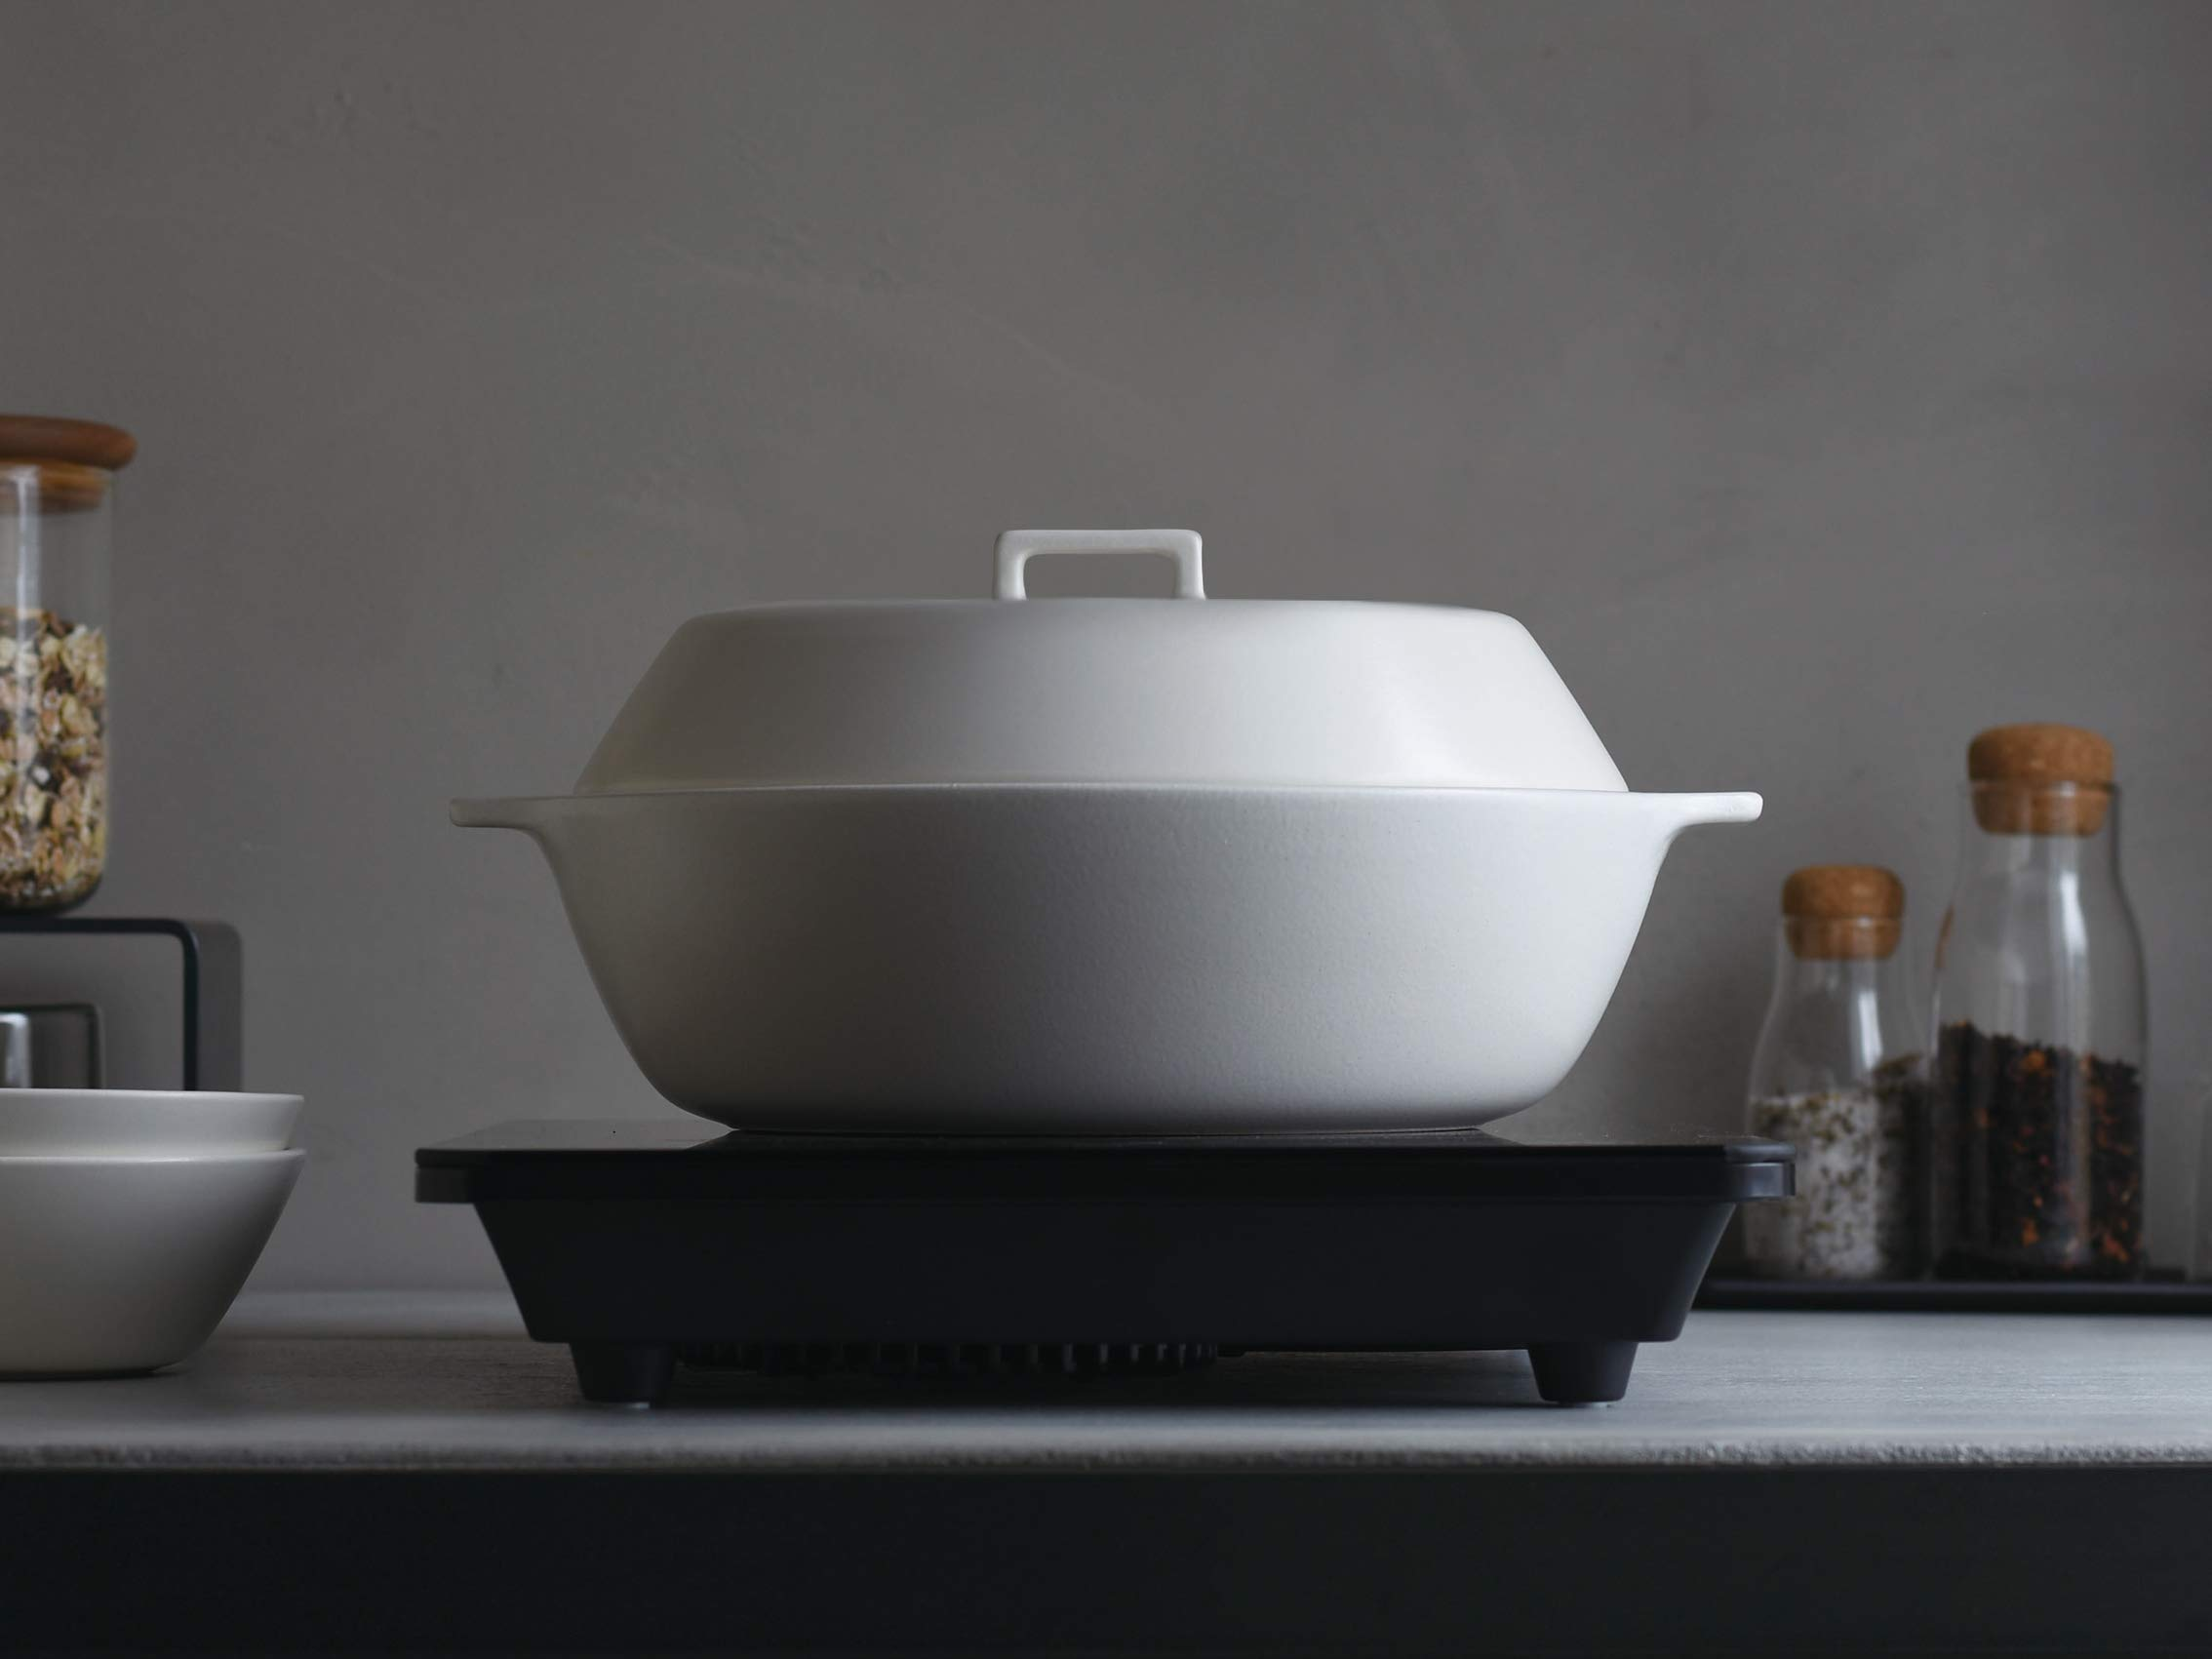 Kinto KAKOMI IH Donabe White 40.6oz / 1.2L Clay Pot To Steam, Simmer, And Stew To Make Various Pot-dishes. by Kinto (Image #3)